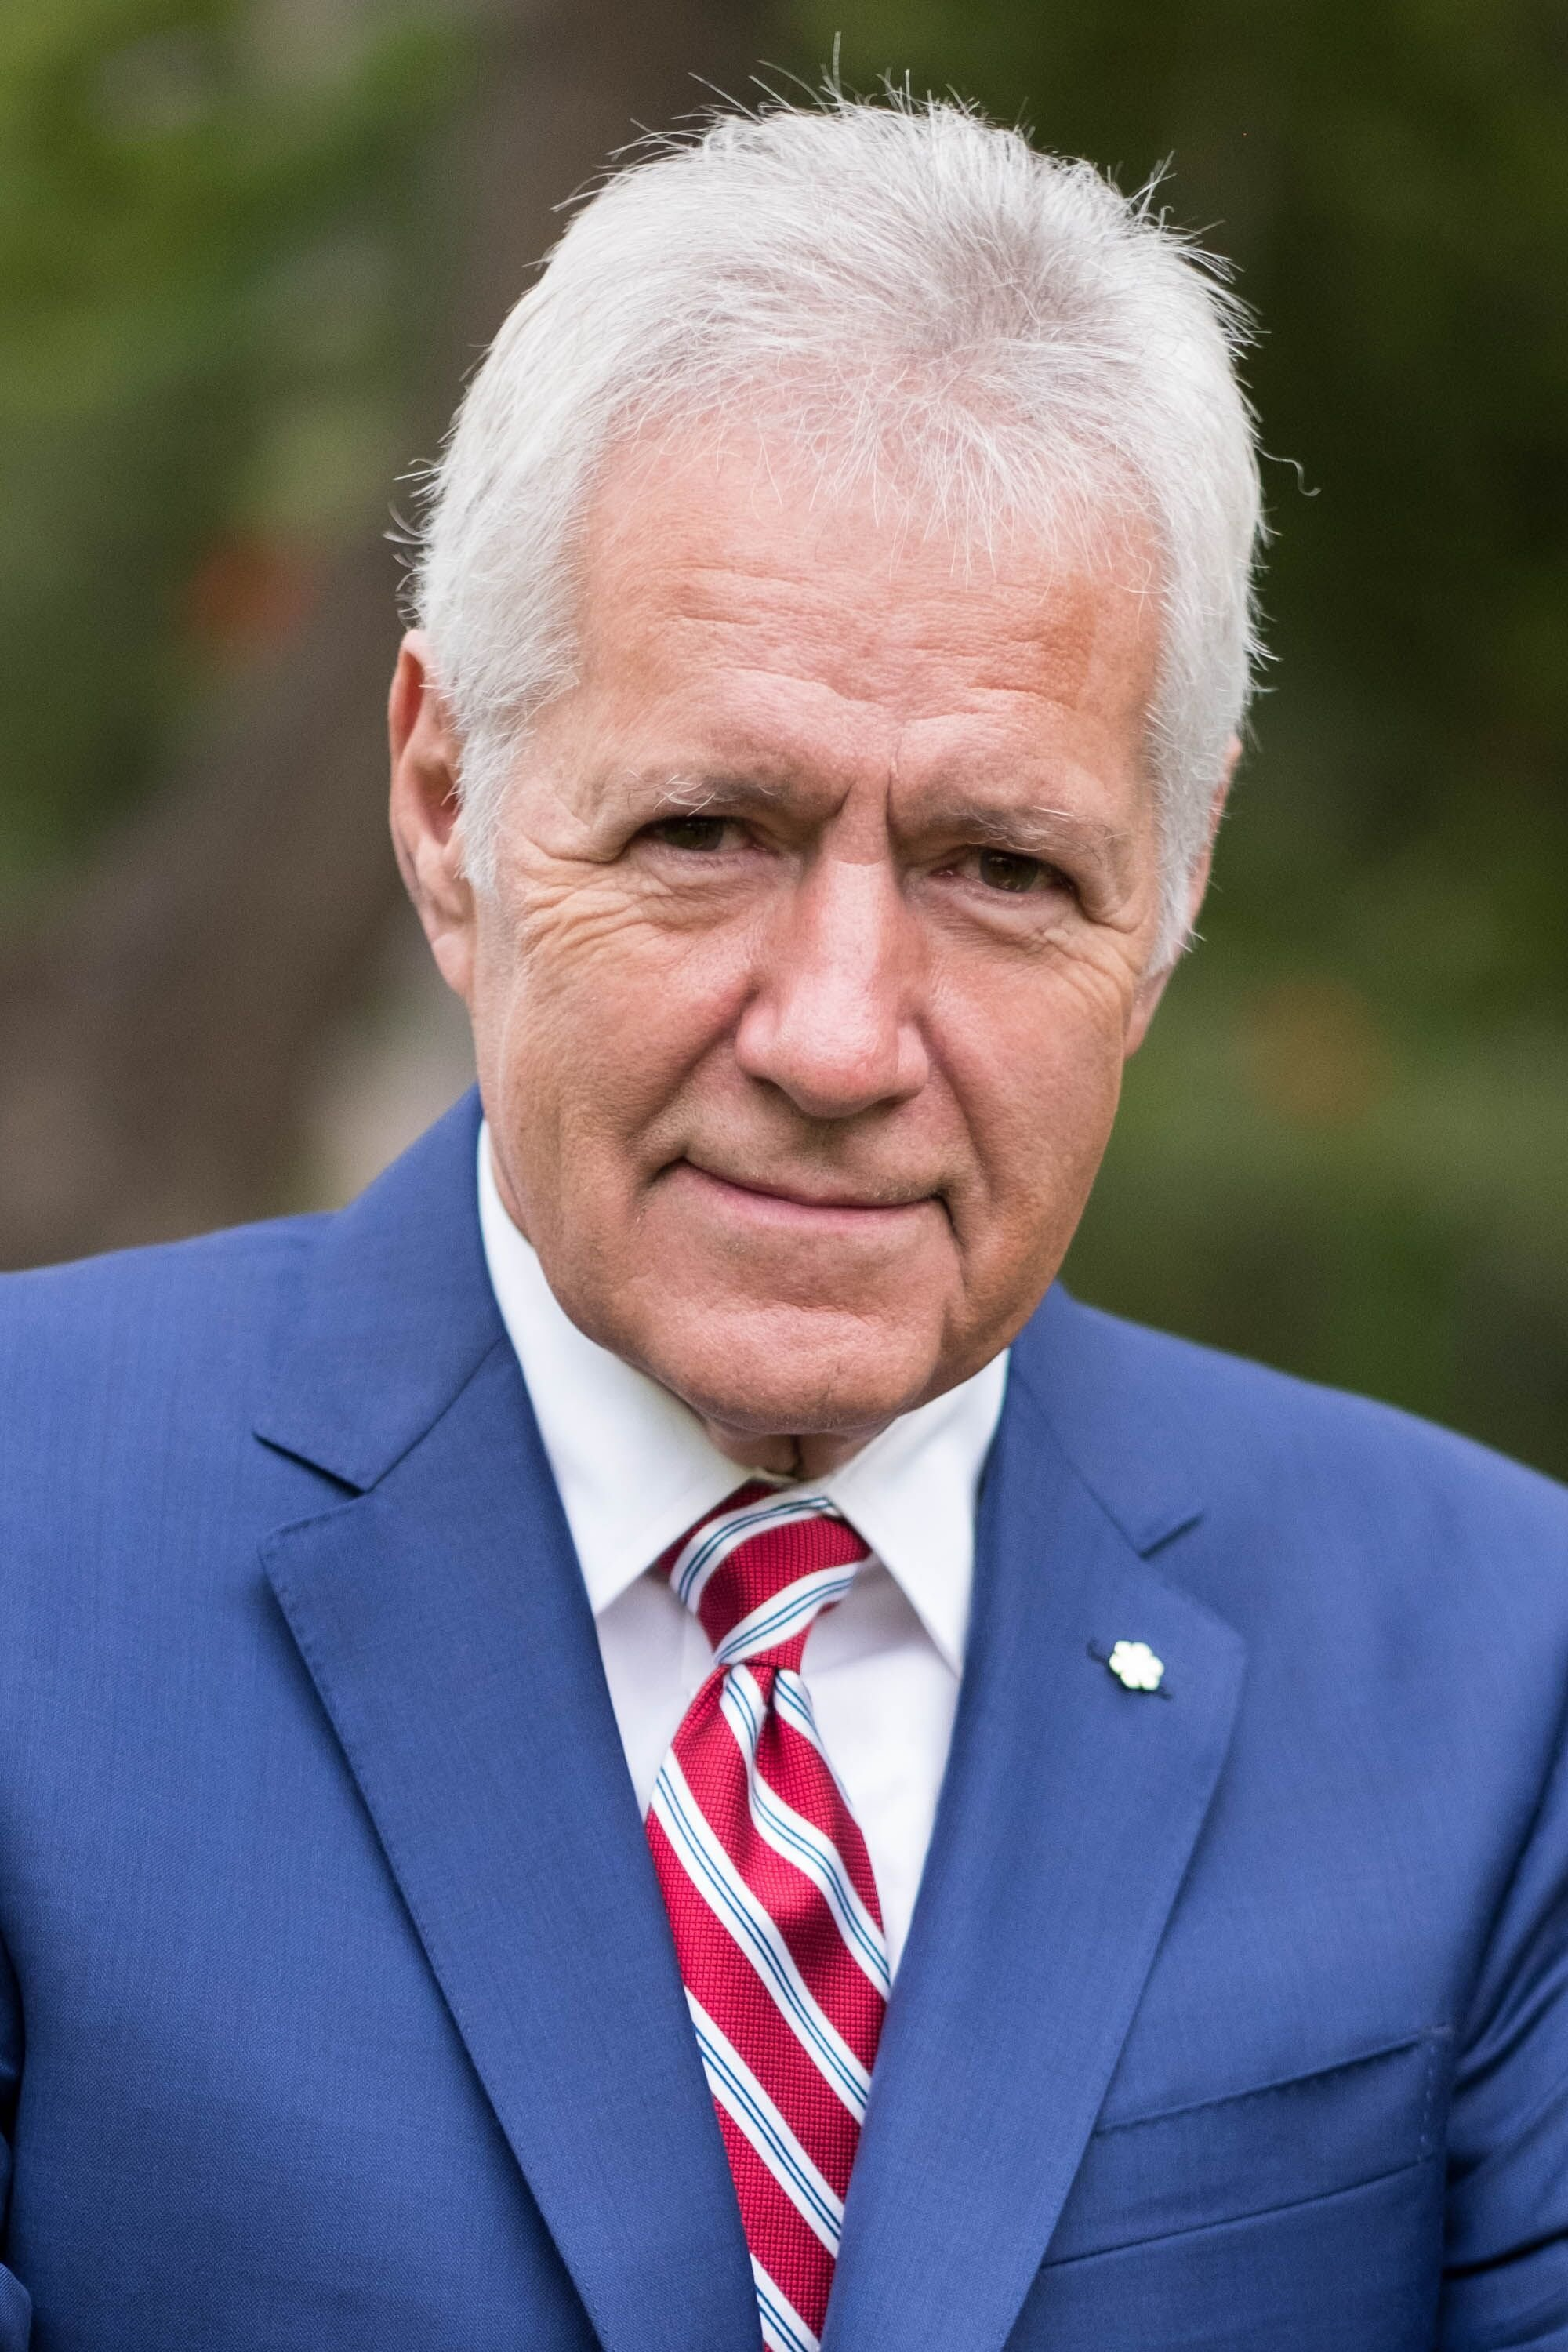 Alex Trebek attends the 150th anniversary of Canada's Confederation. | Source: Getty Images